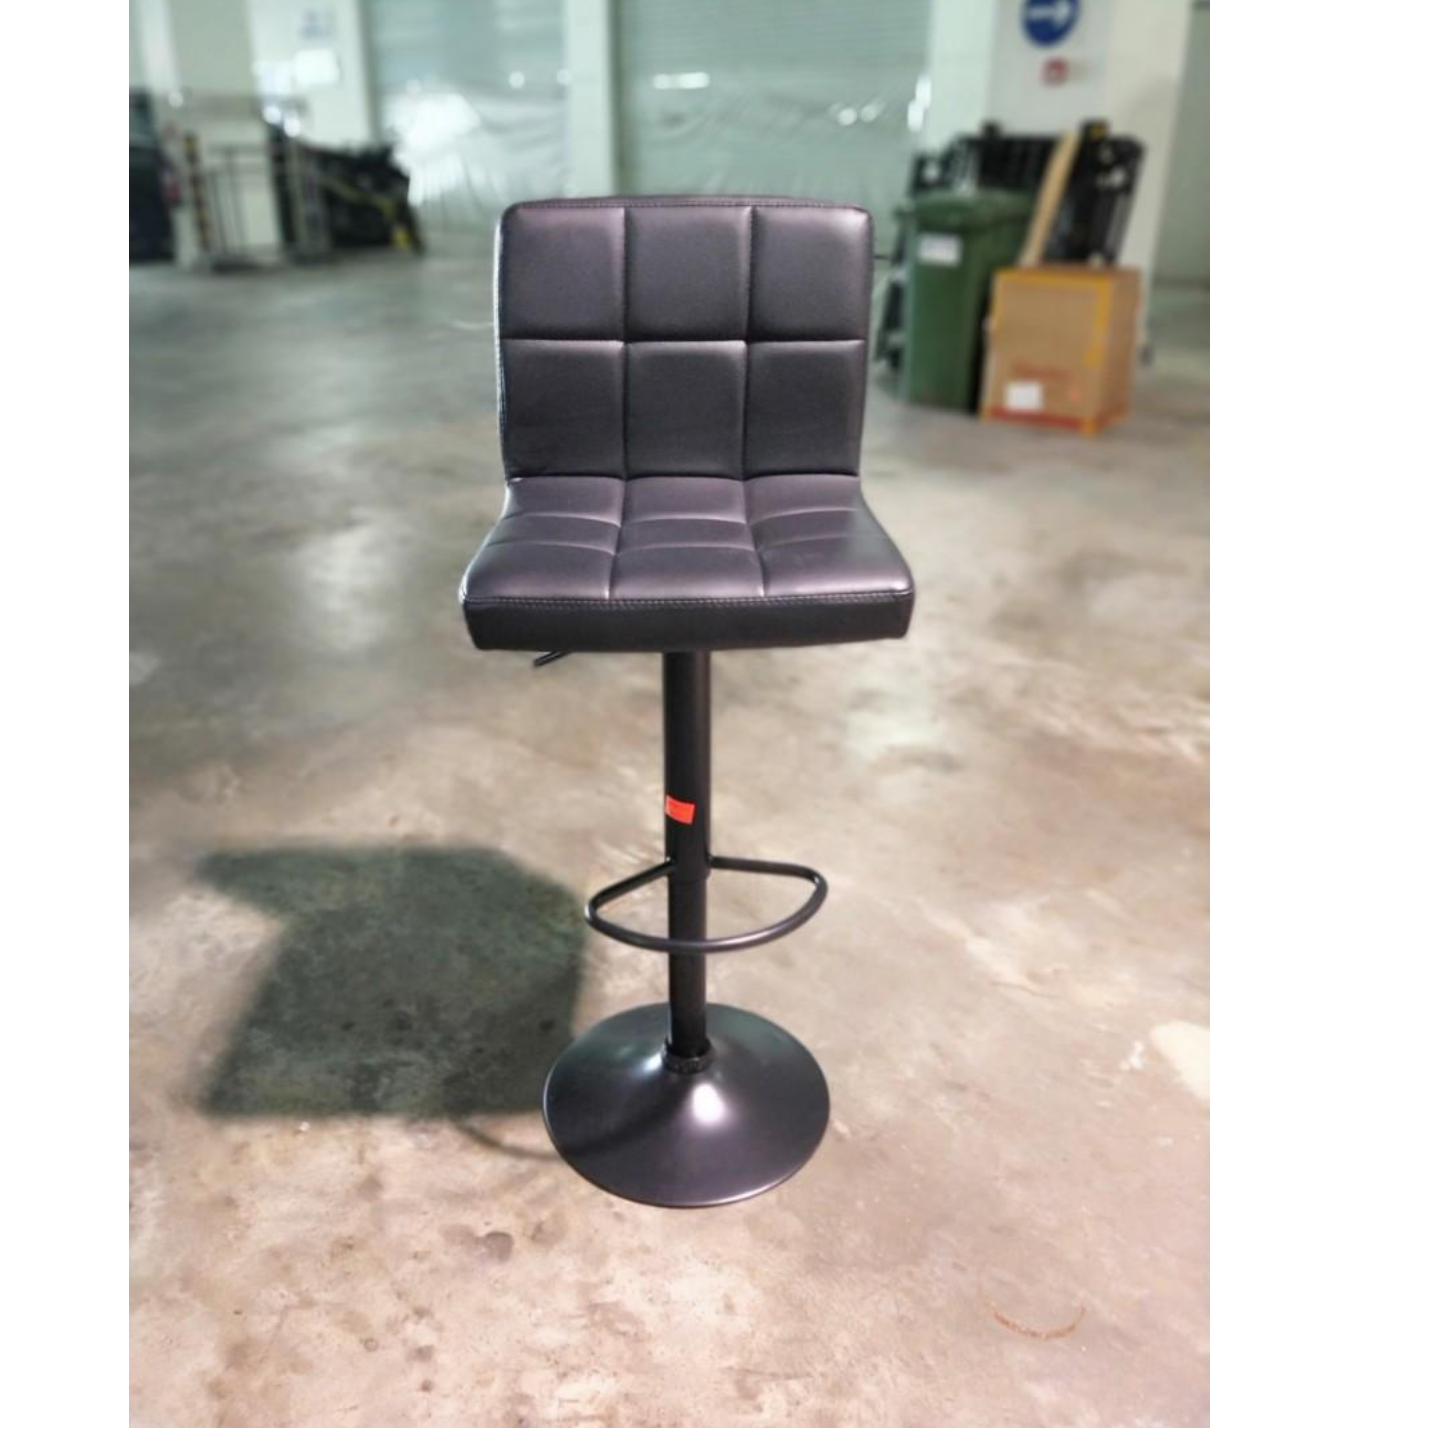 VADO II Bar Stool in BLACK (Black Base)